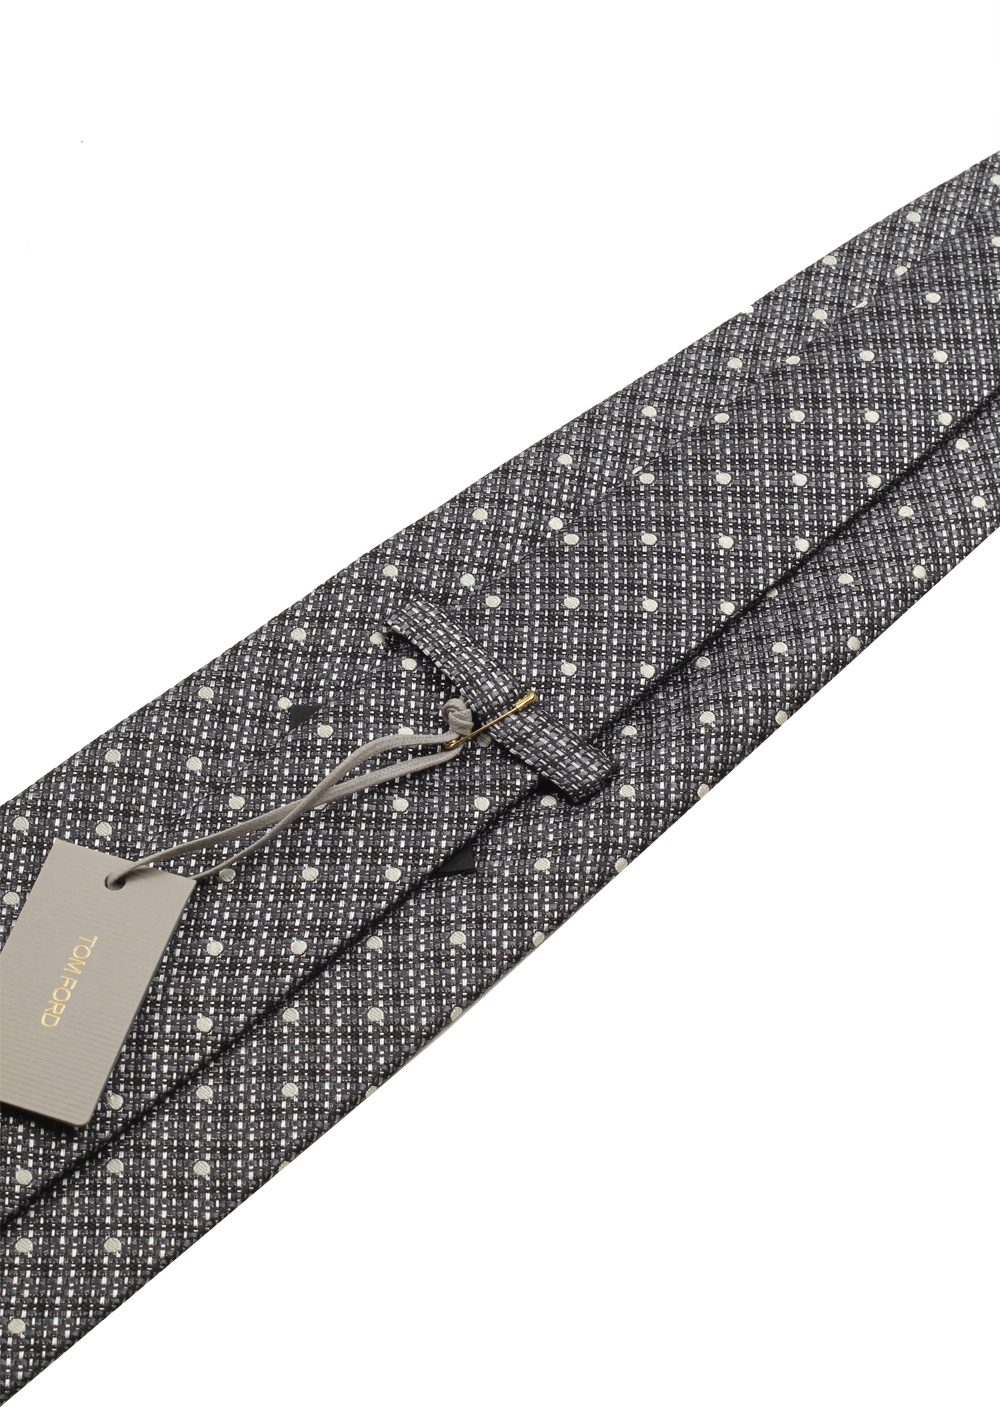 TOM FORD Patterned Gray Tie In Silk | Costume Limité